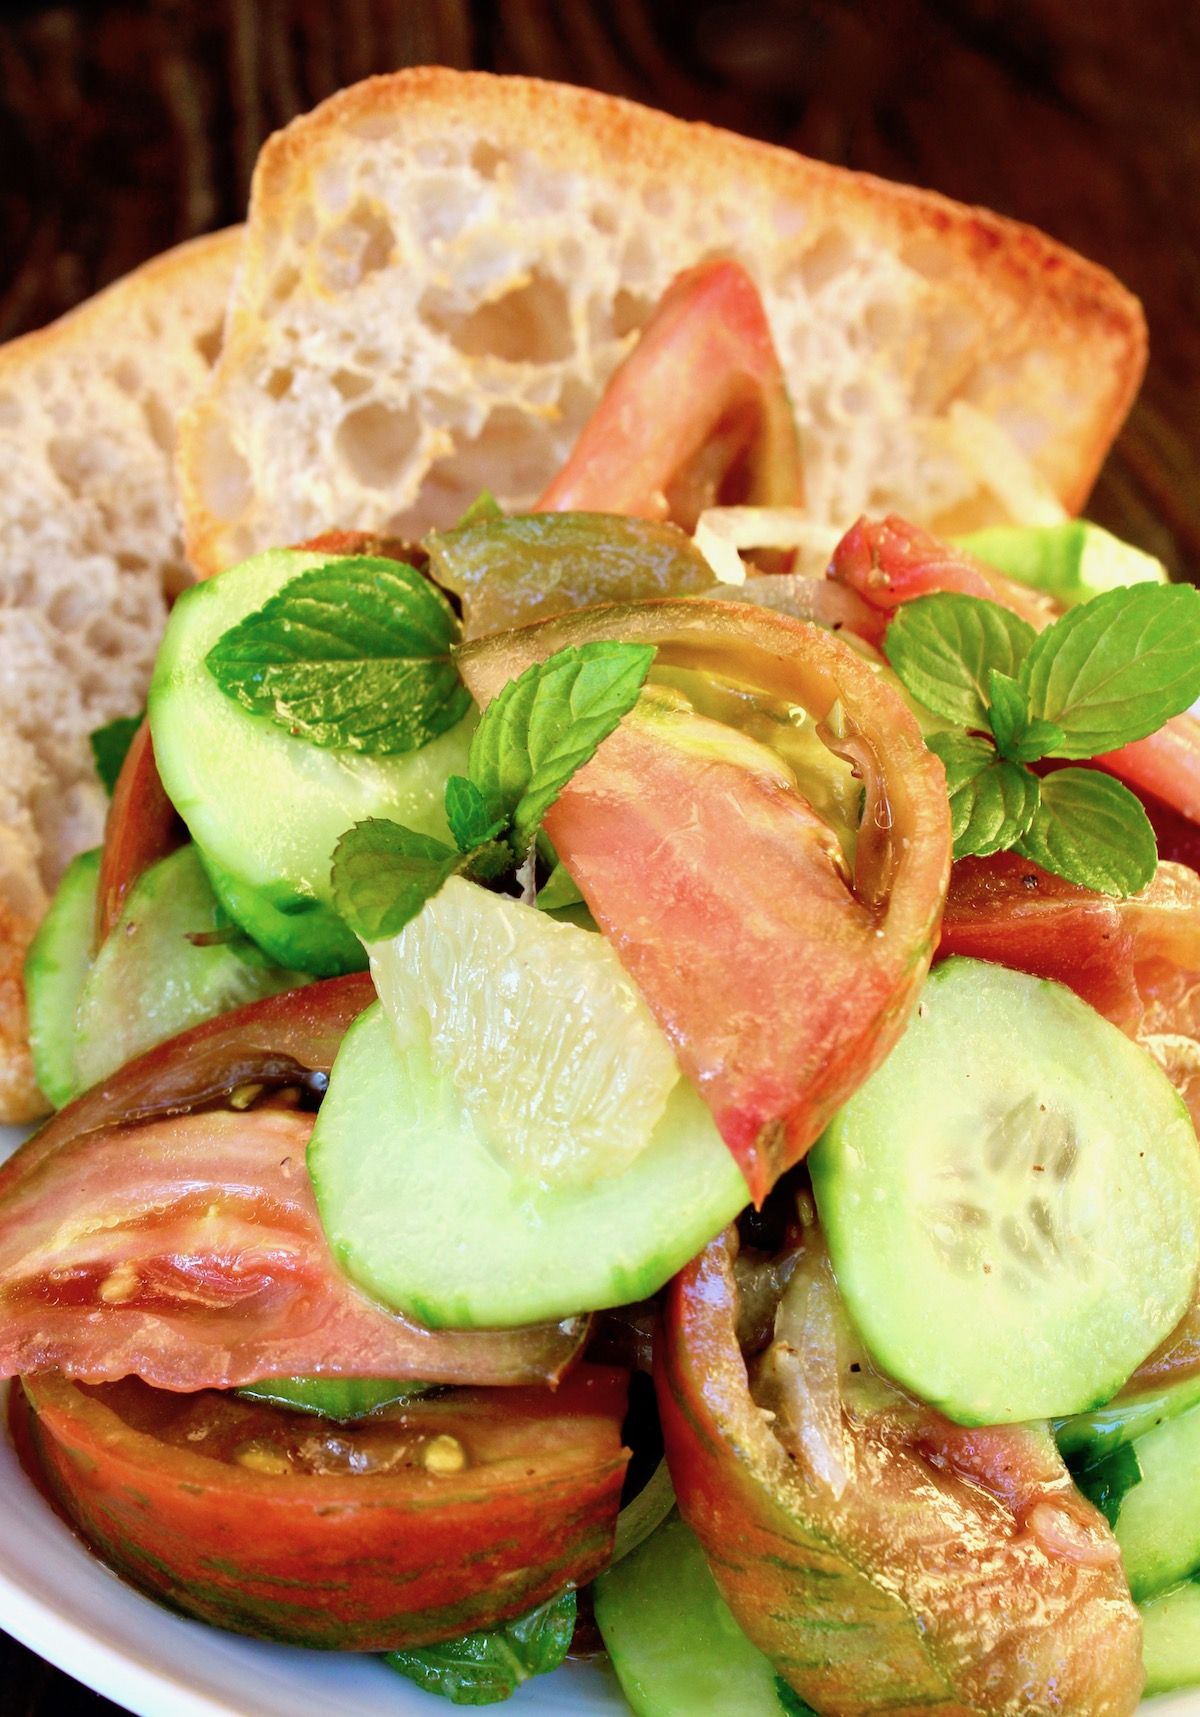 Close up of tomato and cucumber salad with slices of toast